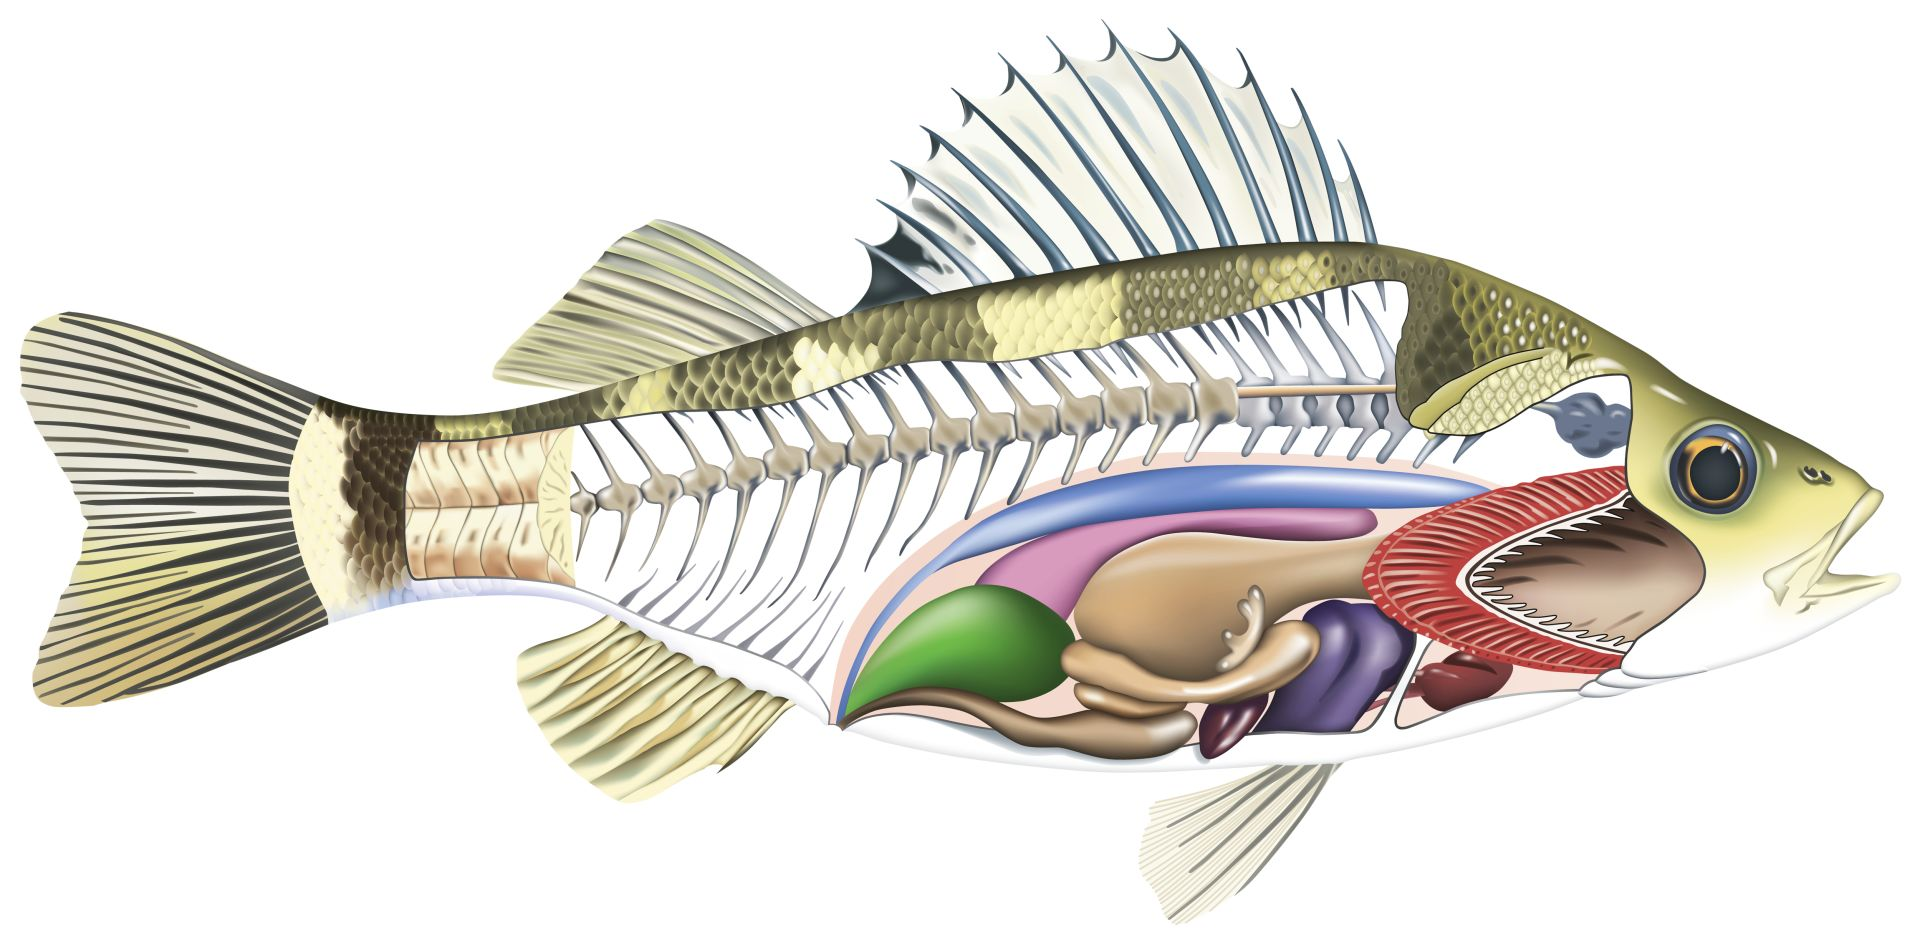 Anatomy of a Fish | Parts of a Fish | DK Find Out